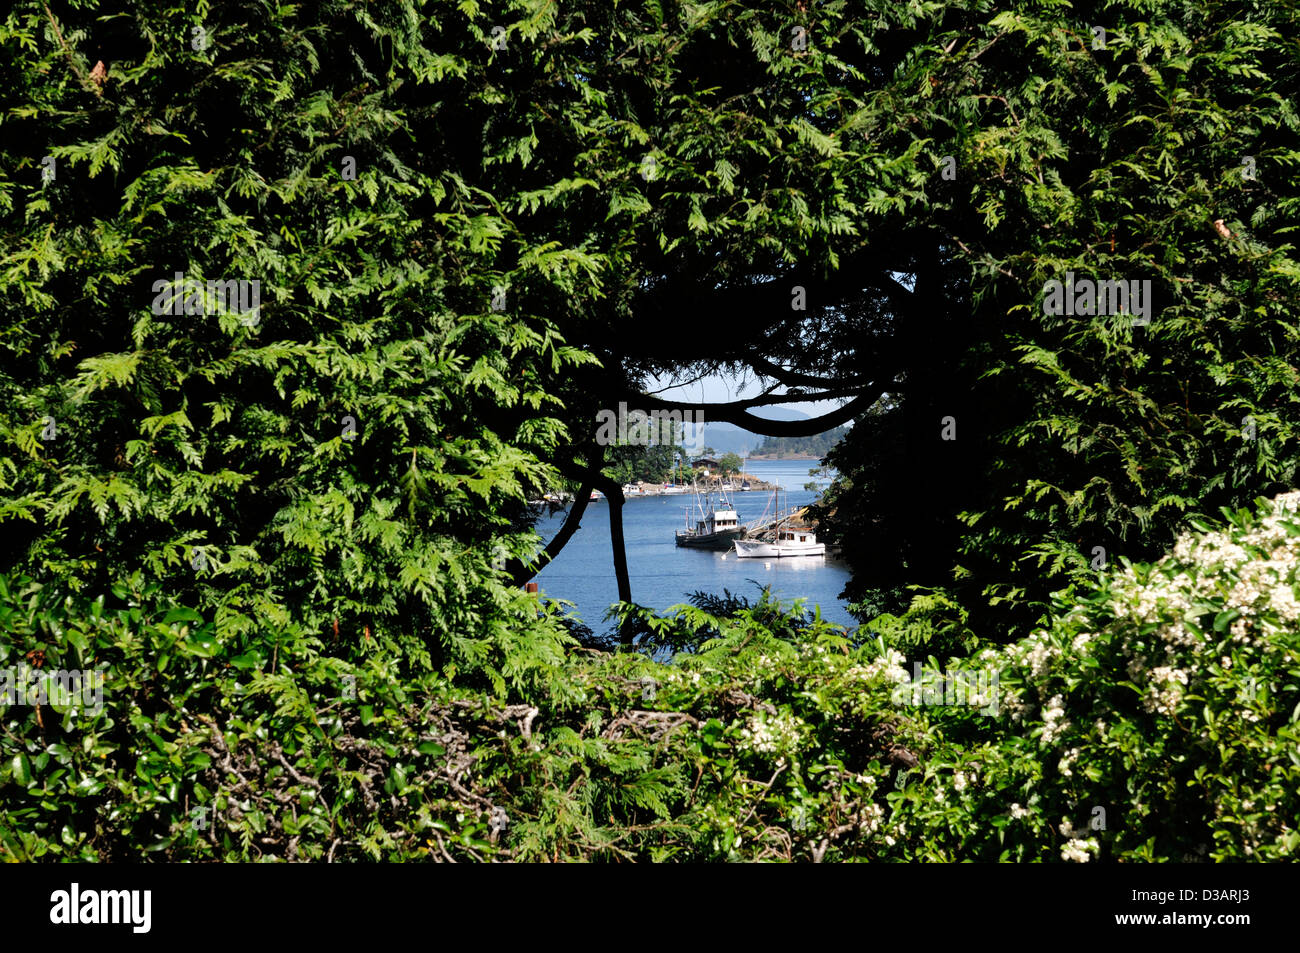 Clipped hedge window view through Brentwood bay japanese garden butchart gardens victoria vancouver island canada - Stock Image